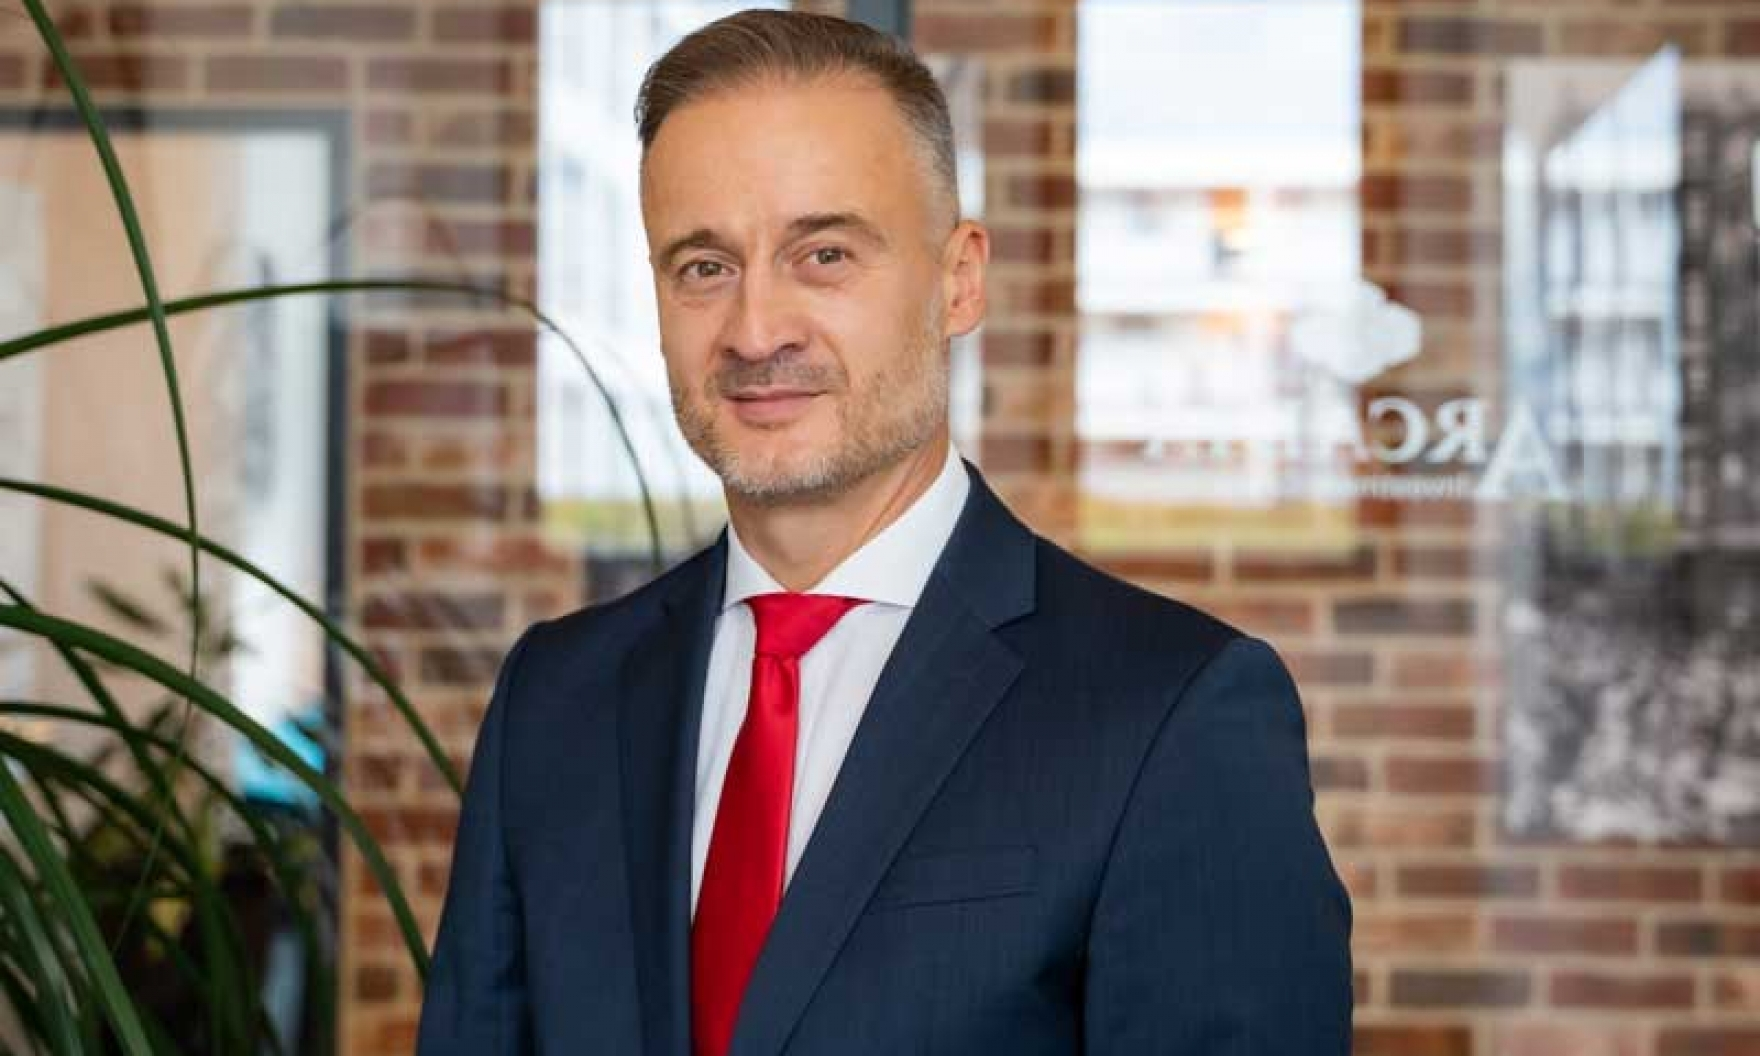 Enrico Näther joins ARCADIA as authorised signatory and head of the letting department